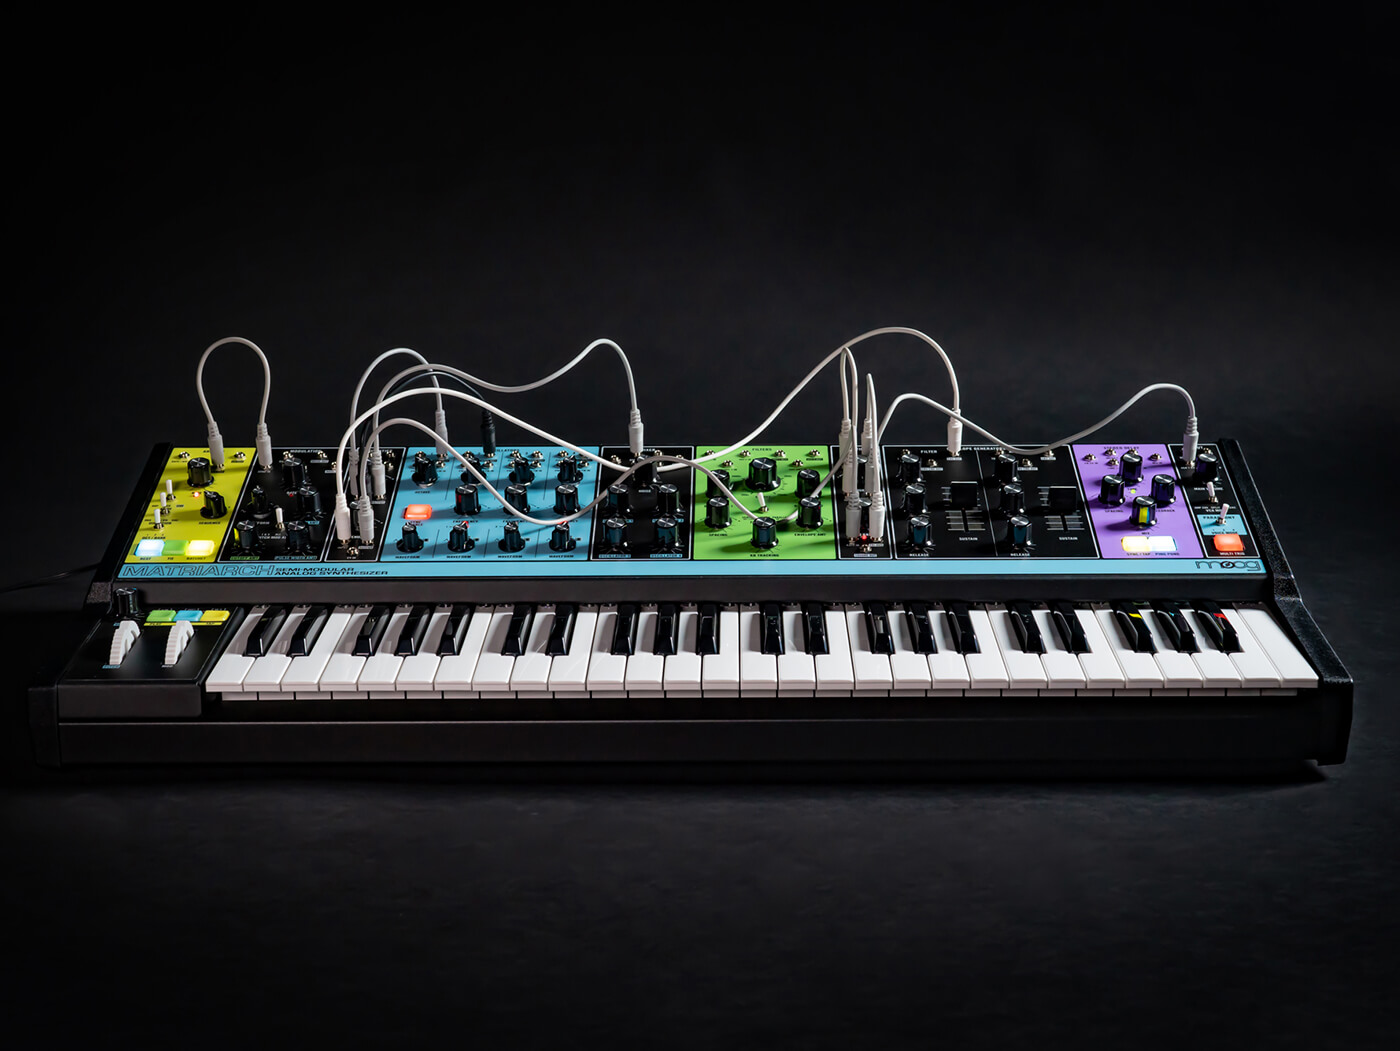 Moog's Matriarch is now shipping